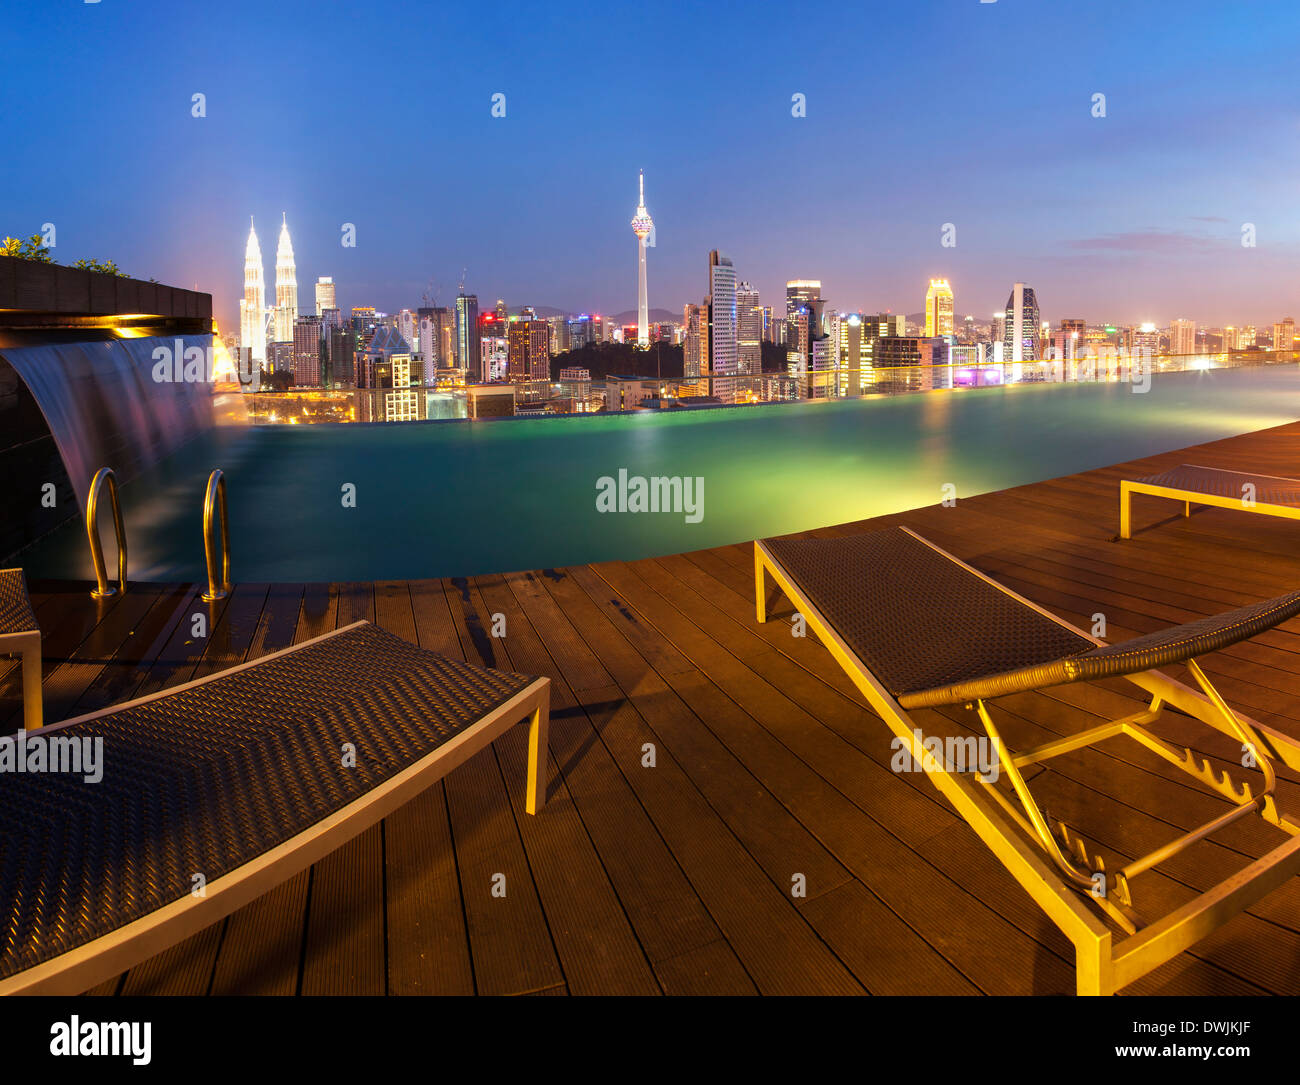 Klcc roof stock photos klcc roof stock images alamy - Rooftop swimming pool kuala lumpur ...